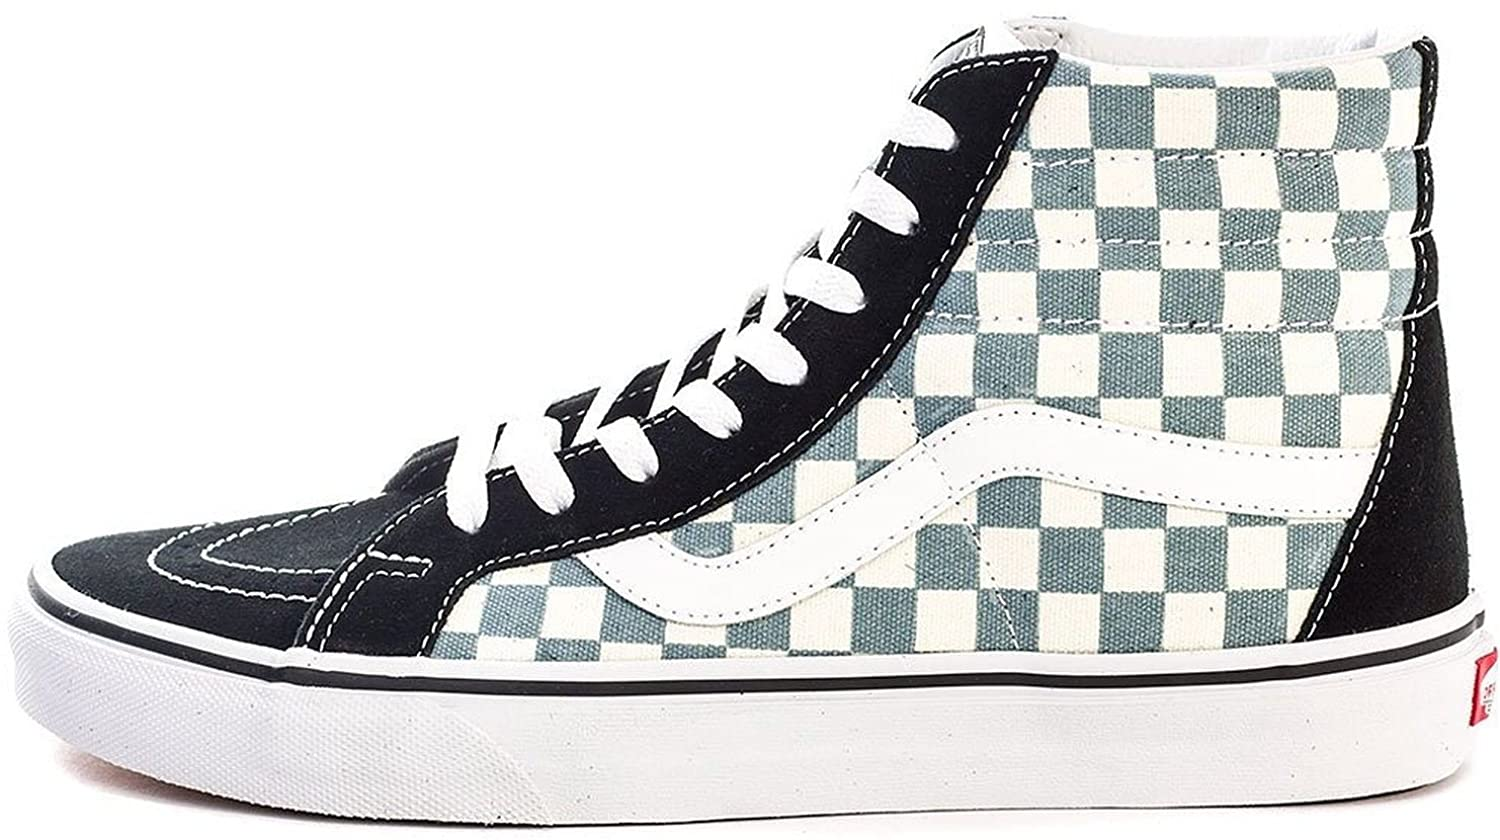 Vans SK8 Hi Reissue Aqua Check Suede Unisex Skate Trainers-13:  Amazon.co.uk: Shoes & Bags